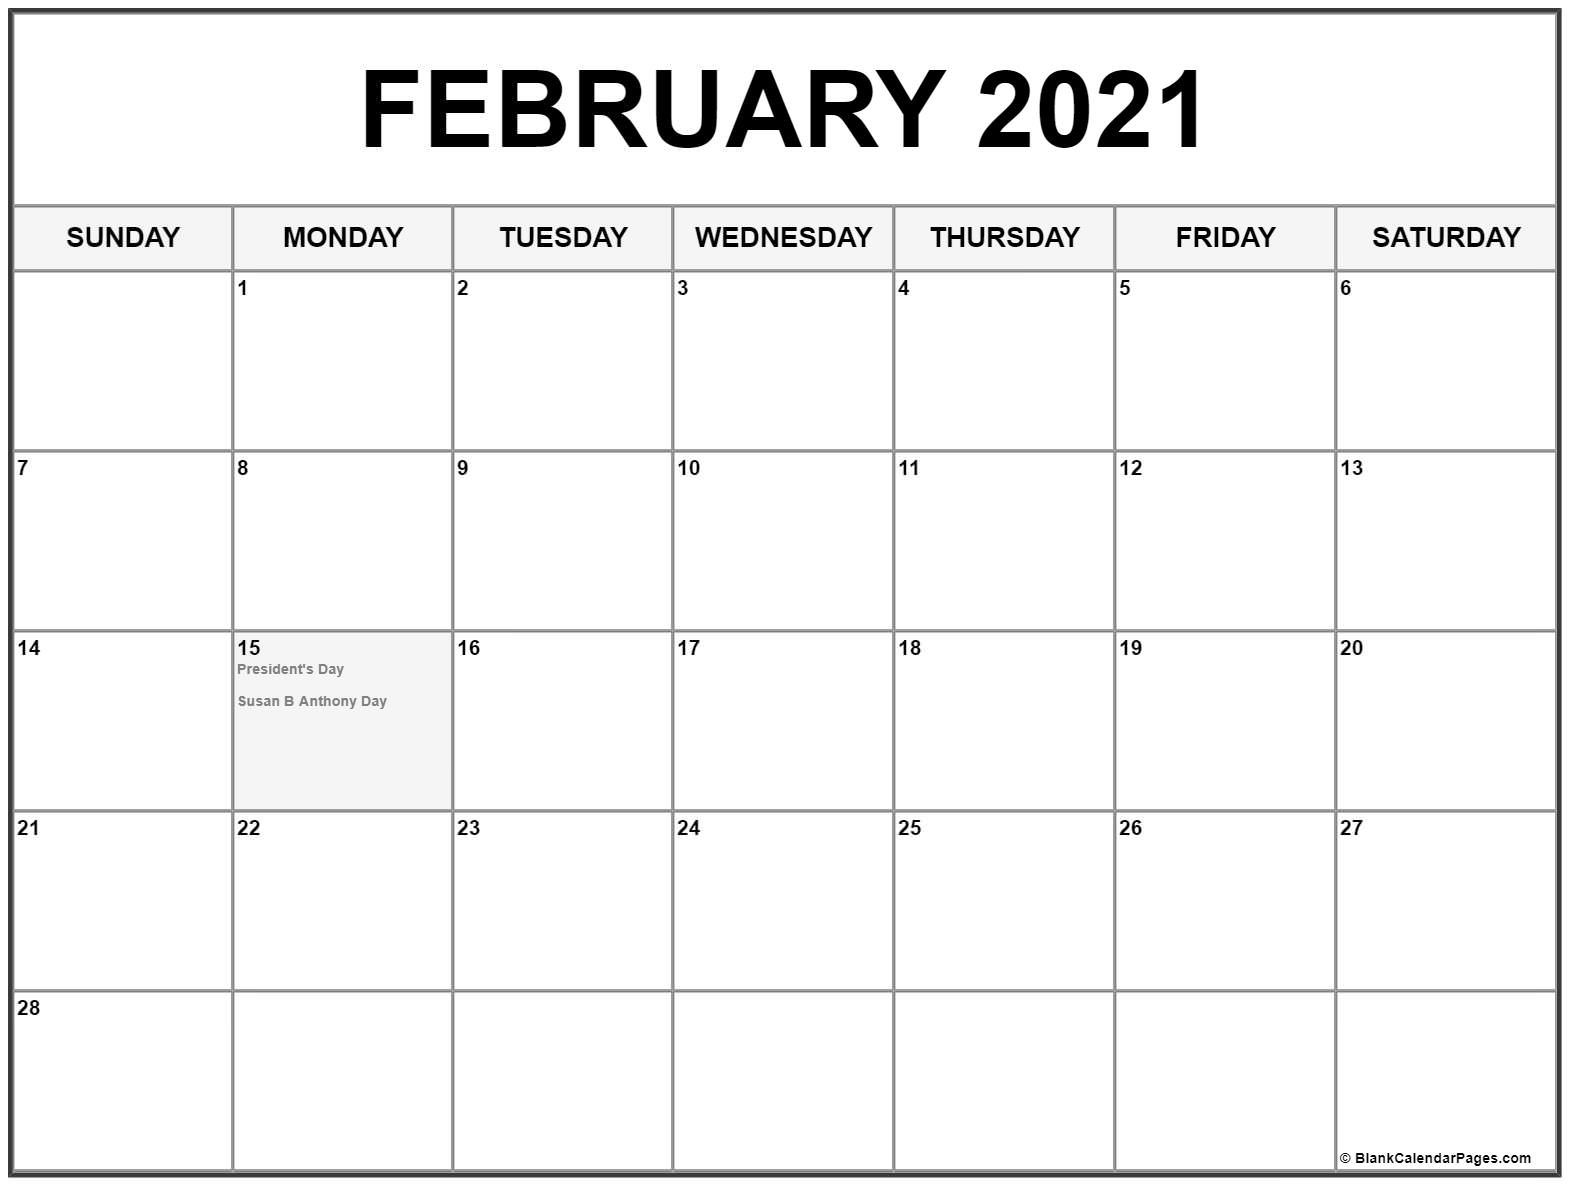 February 2021 Calendar With Holidays